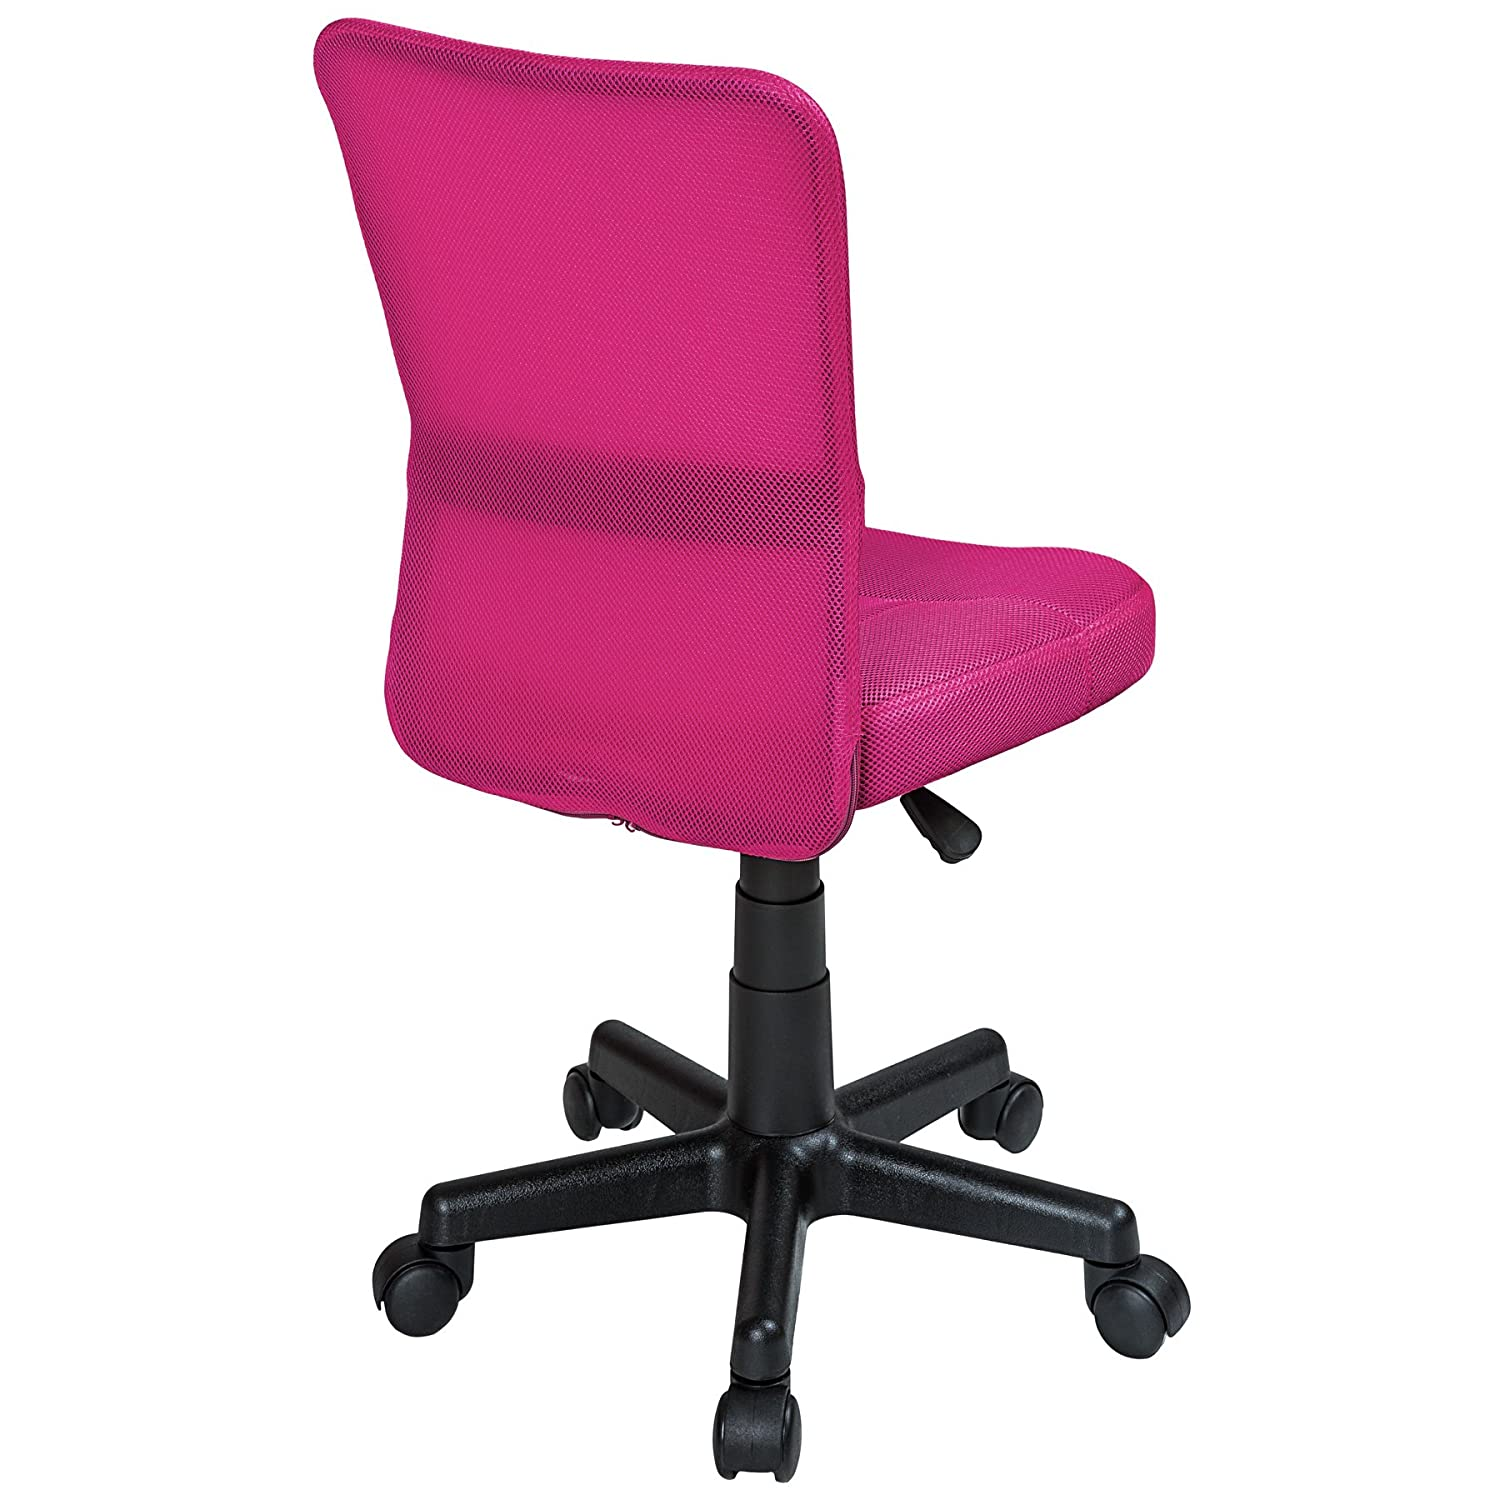 TecTake fice puter chair different colours Pink